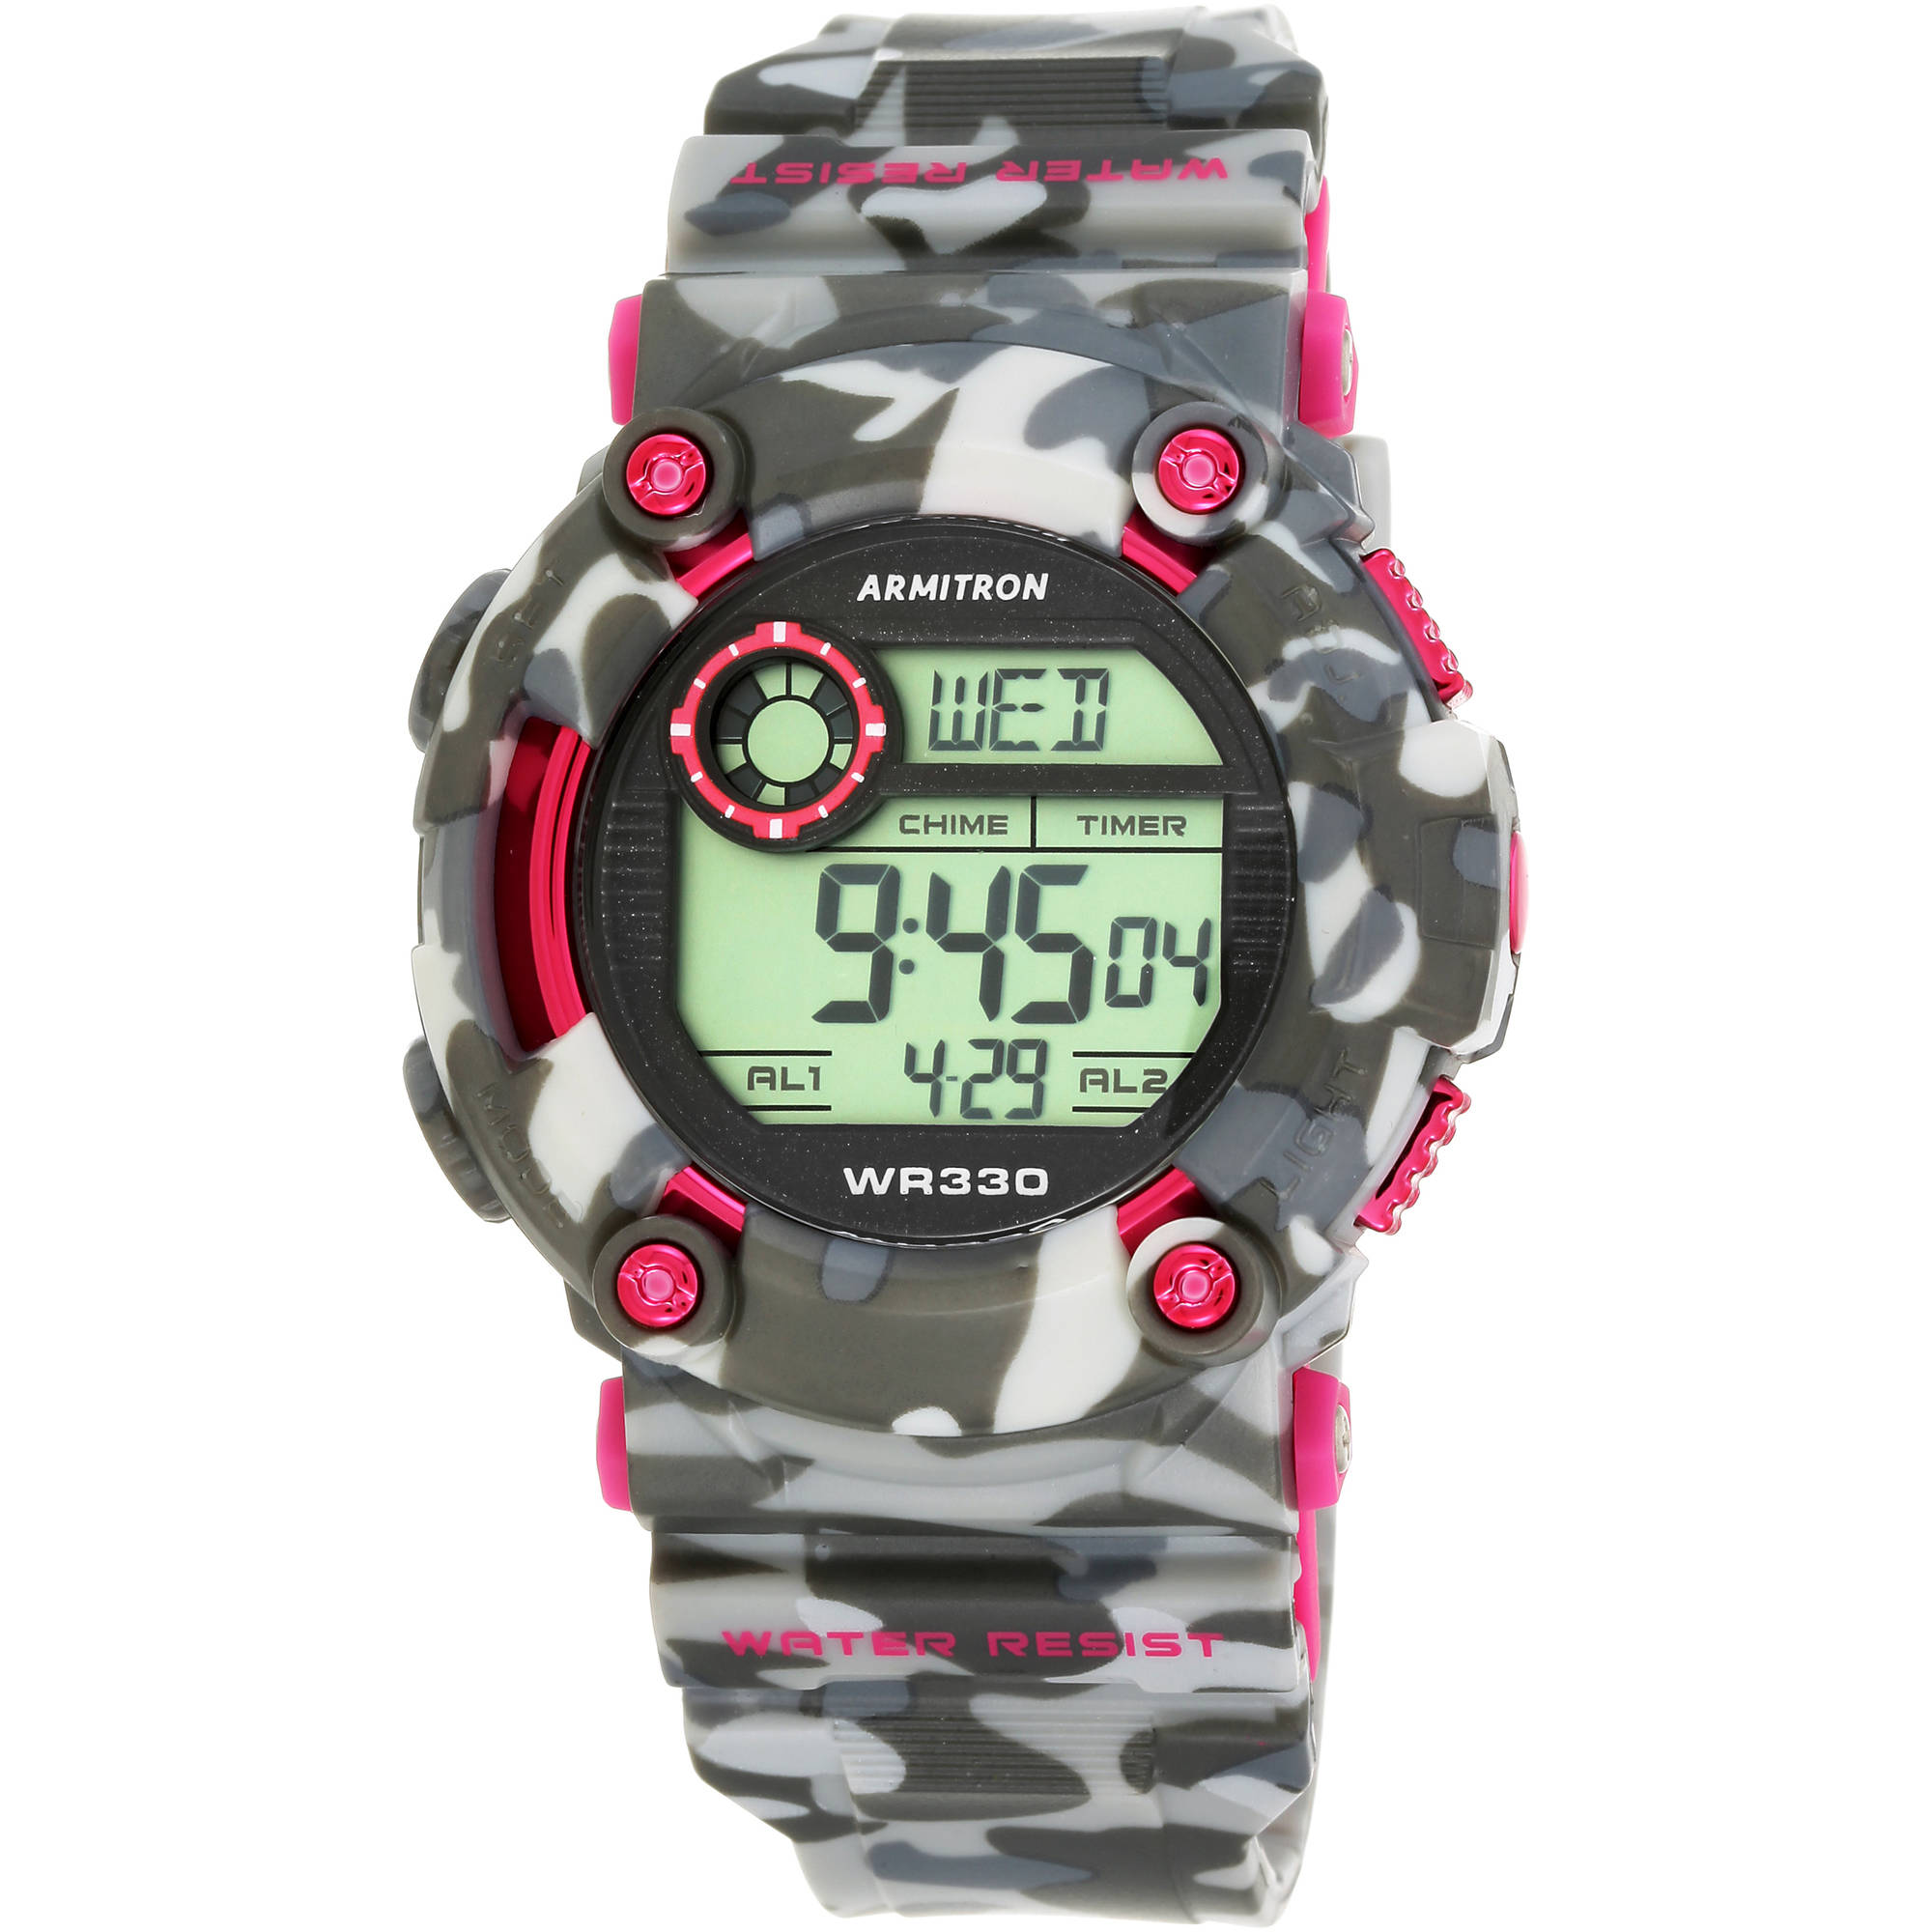 powder g surfstitch watches womens pink watch accessories baby